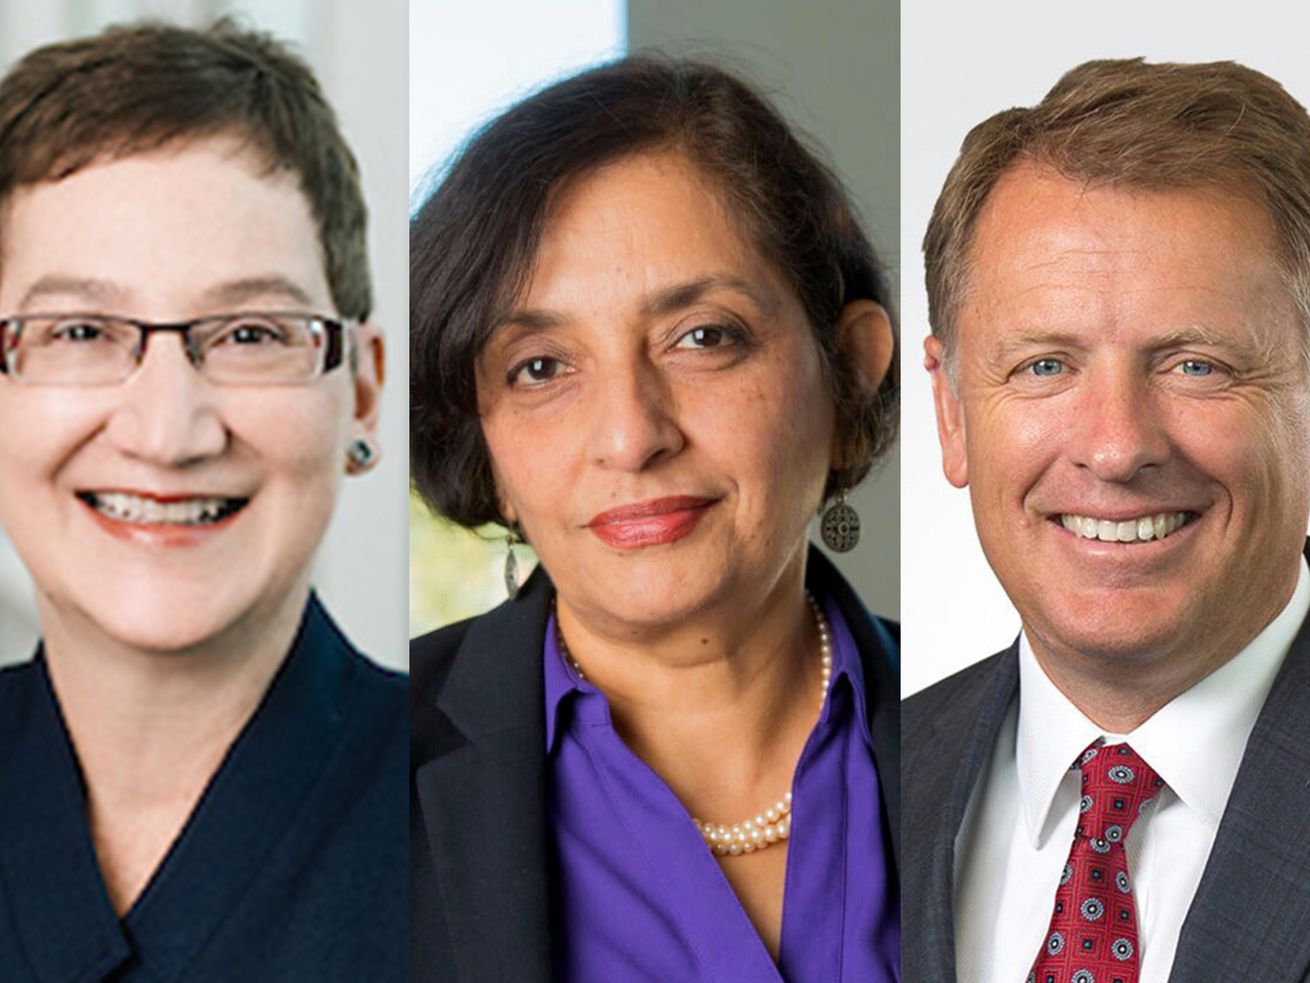 The University of Utah announced the three finalists for its next president.